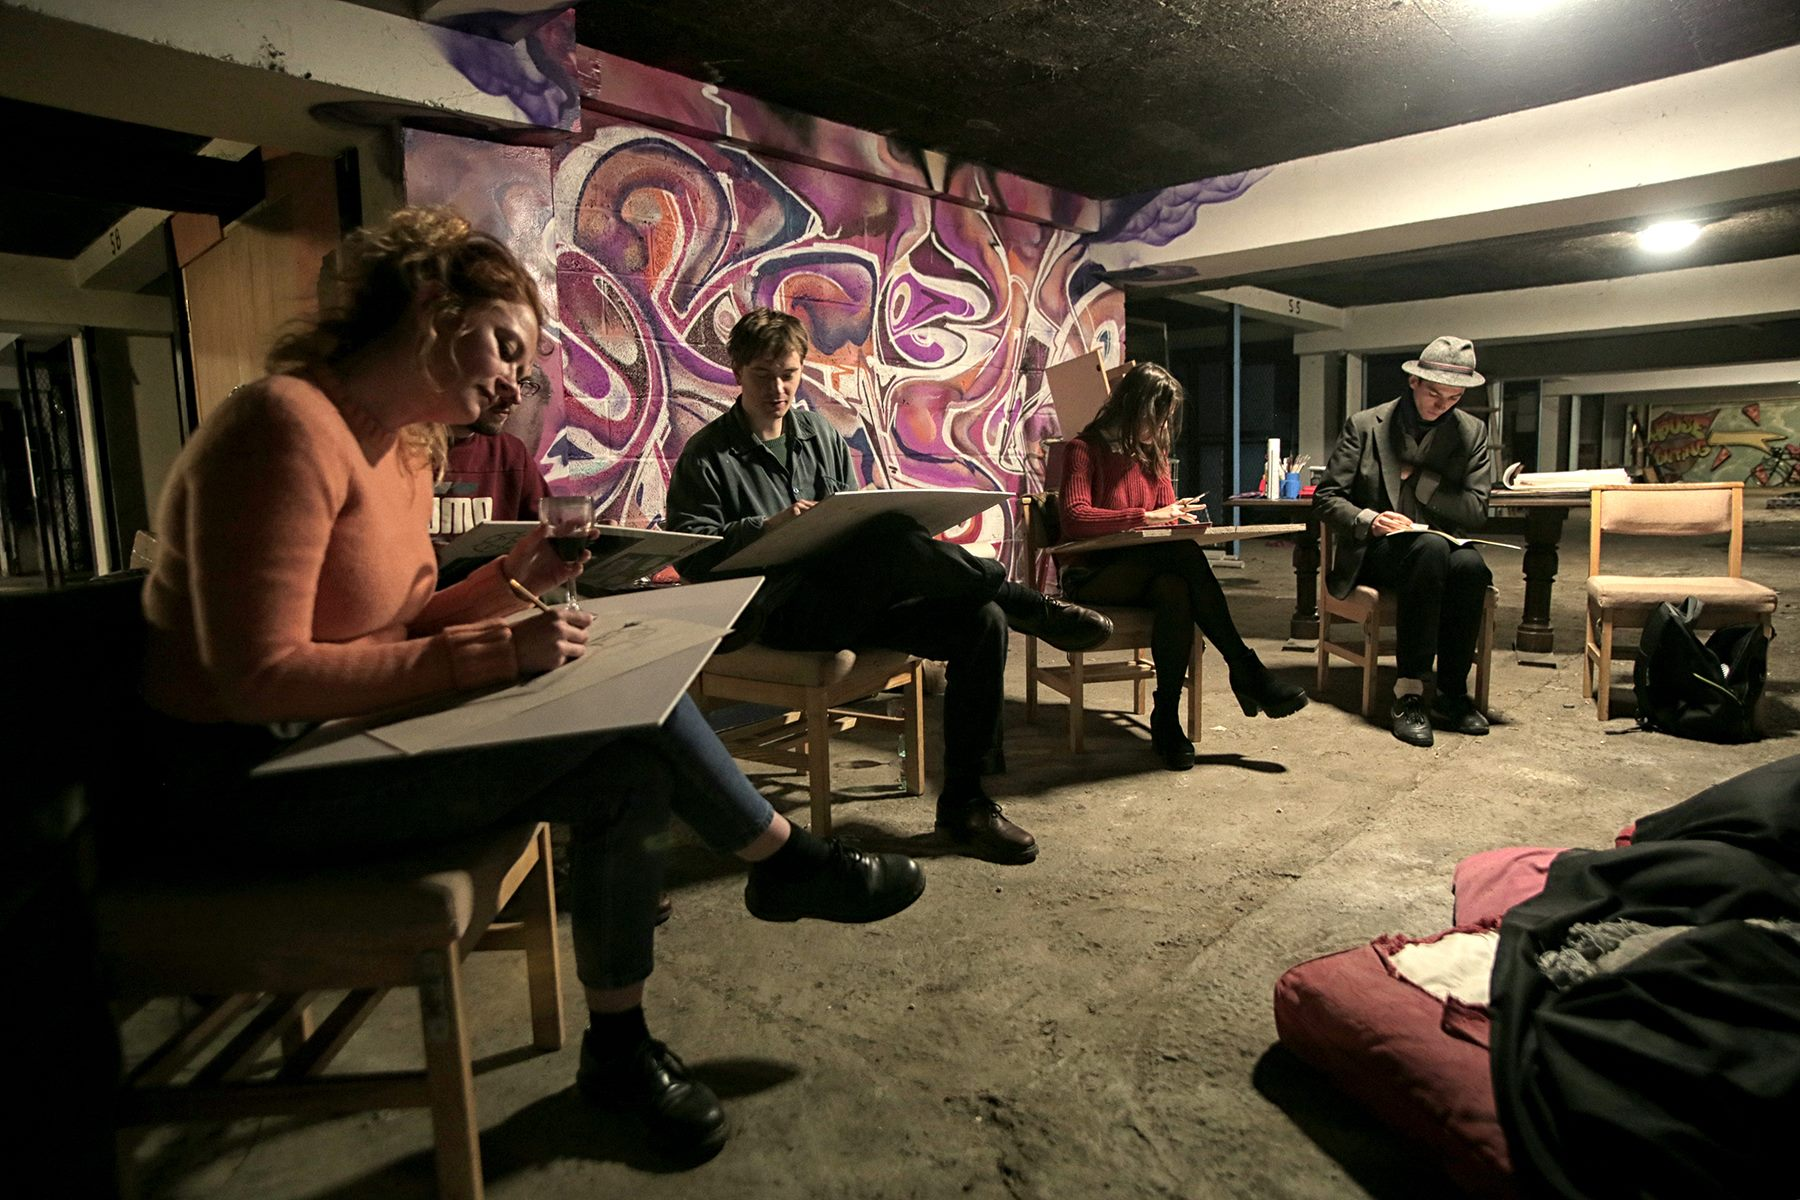 Organised weekly life drawing classes at pop up venue in abandoned tower block in Brixton. 5-25 people per class. Ran for whole of Autumn term.